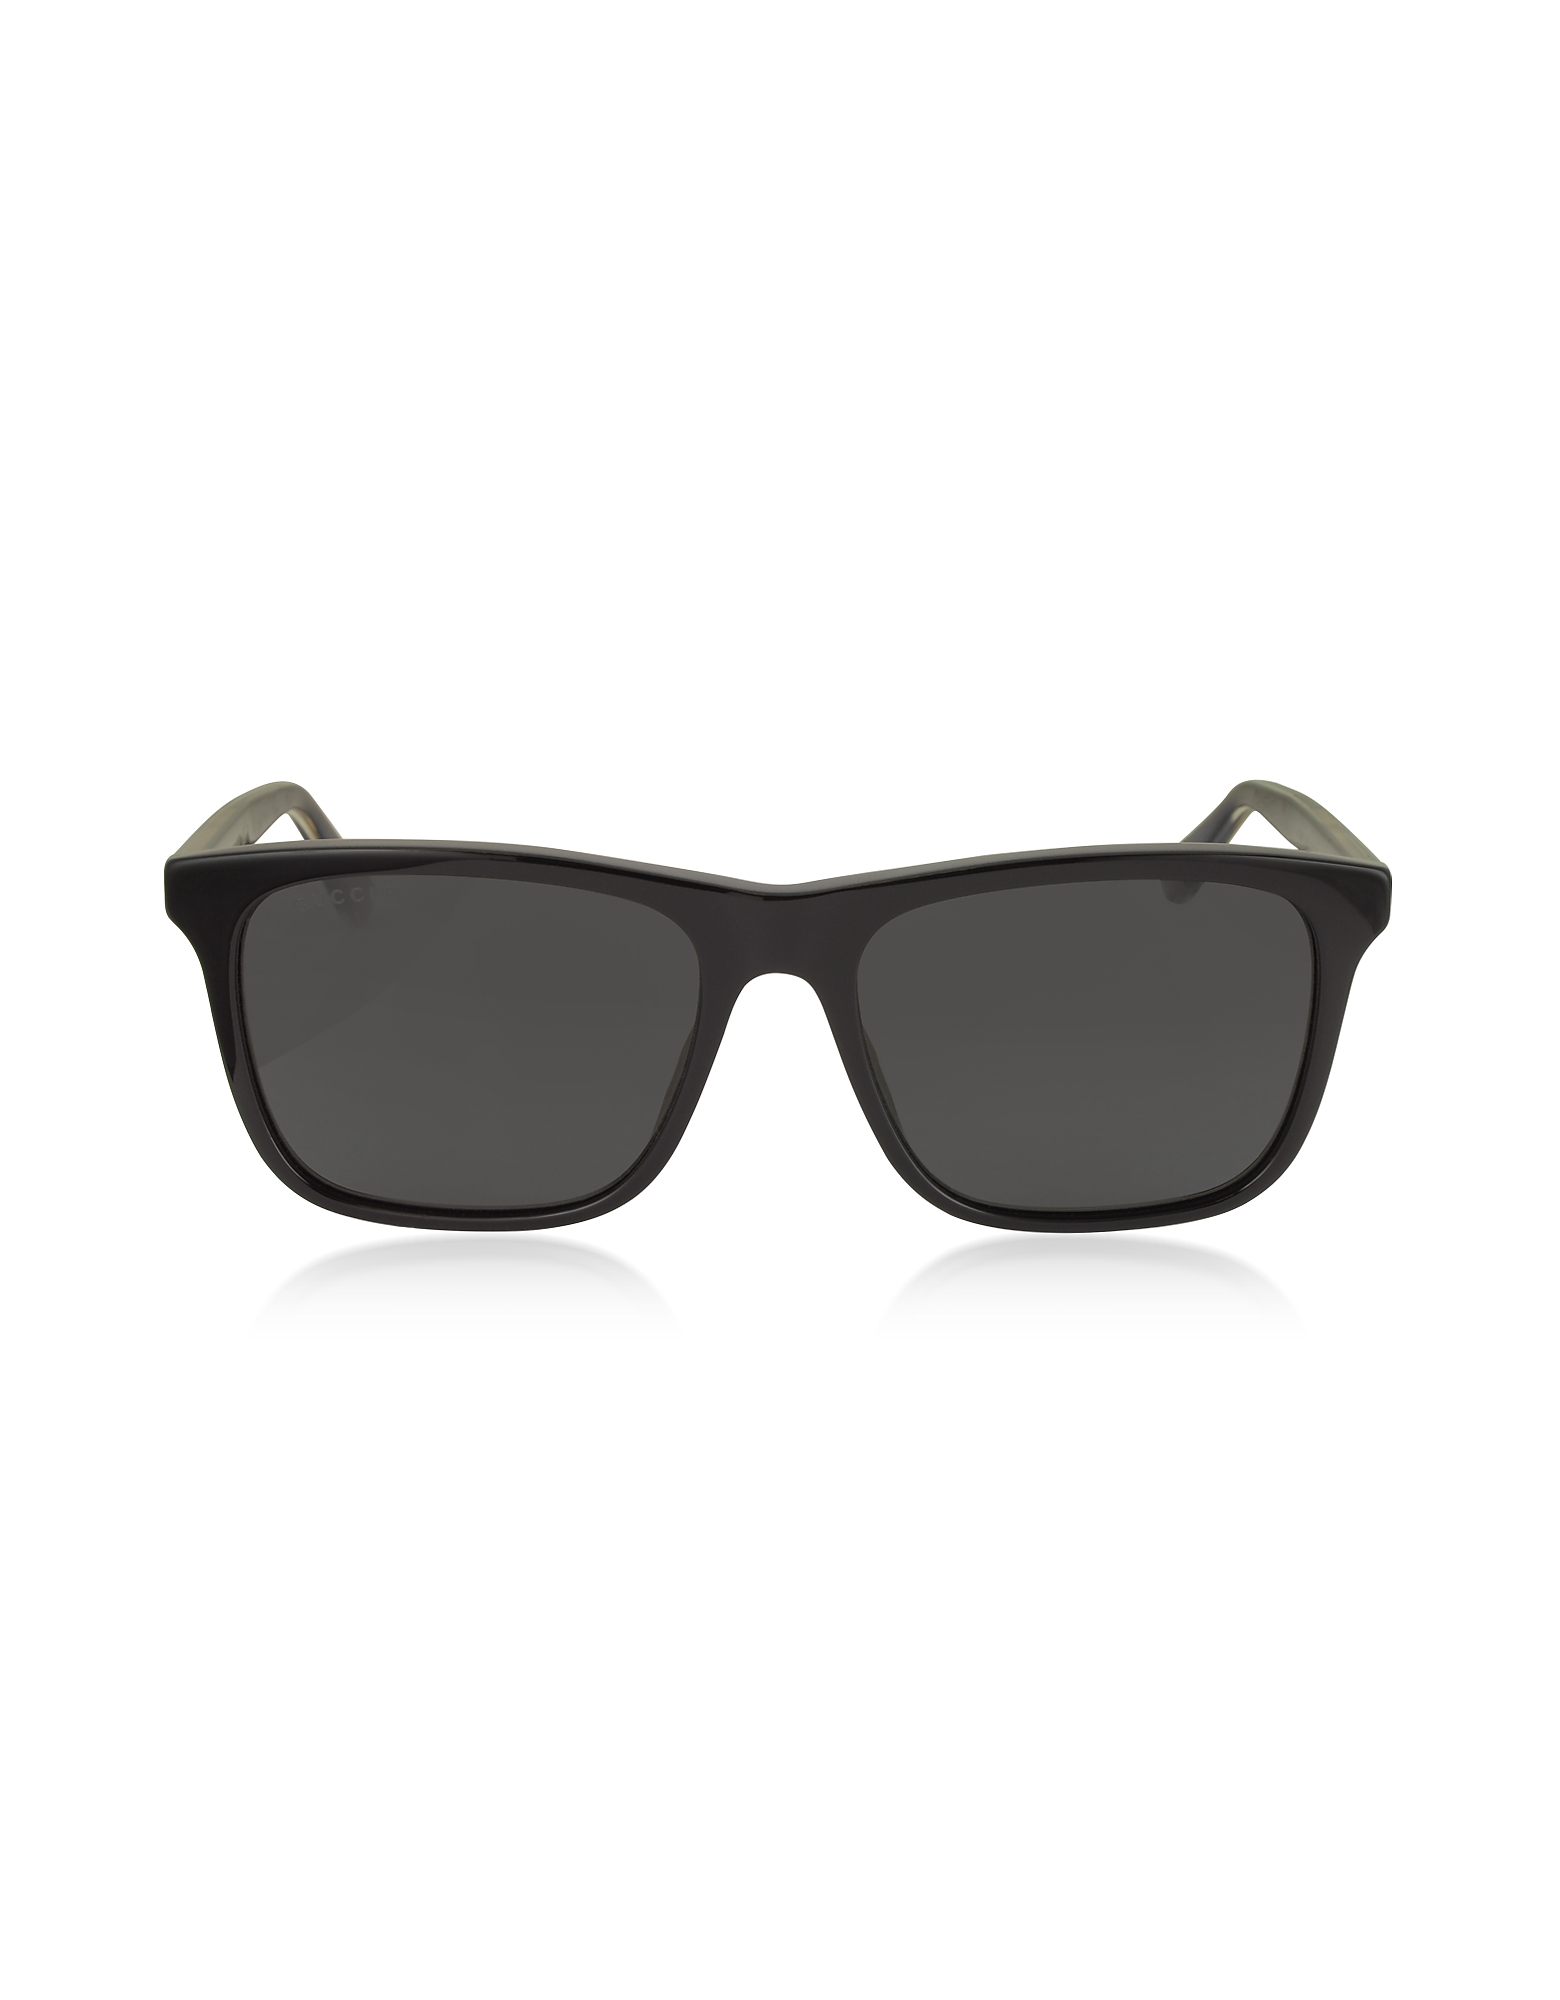 Gucci Designer Sunglasses, Rectangular-frame Optyl Sunglasses